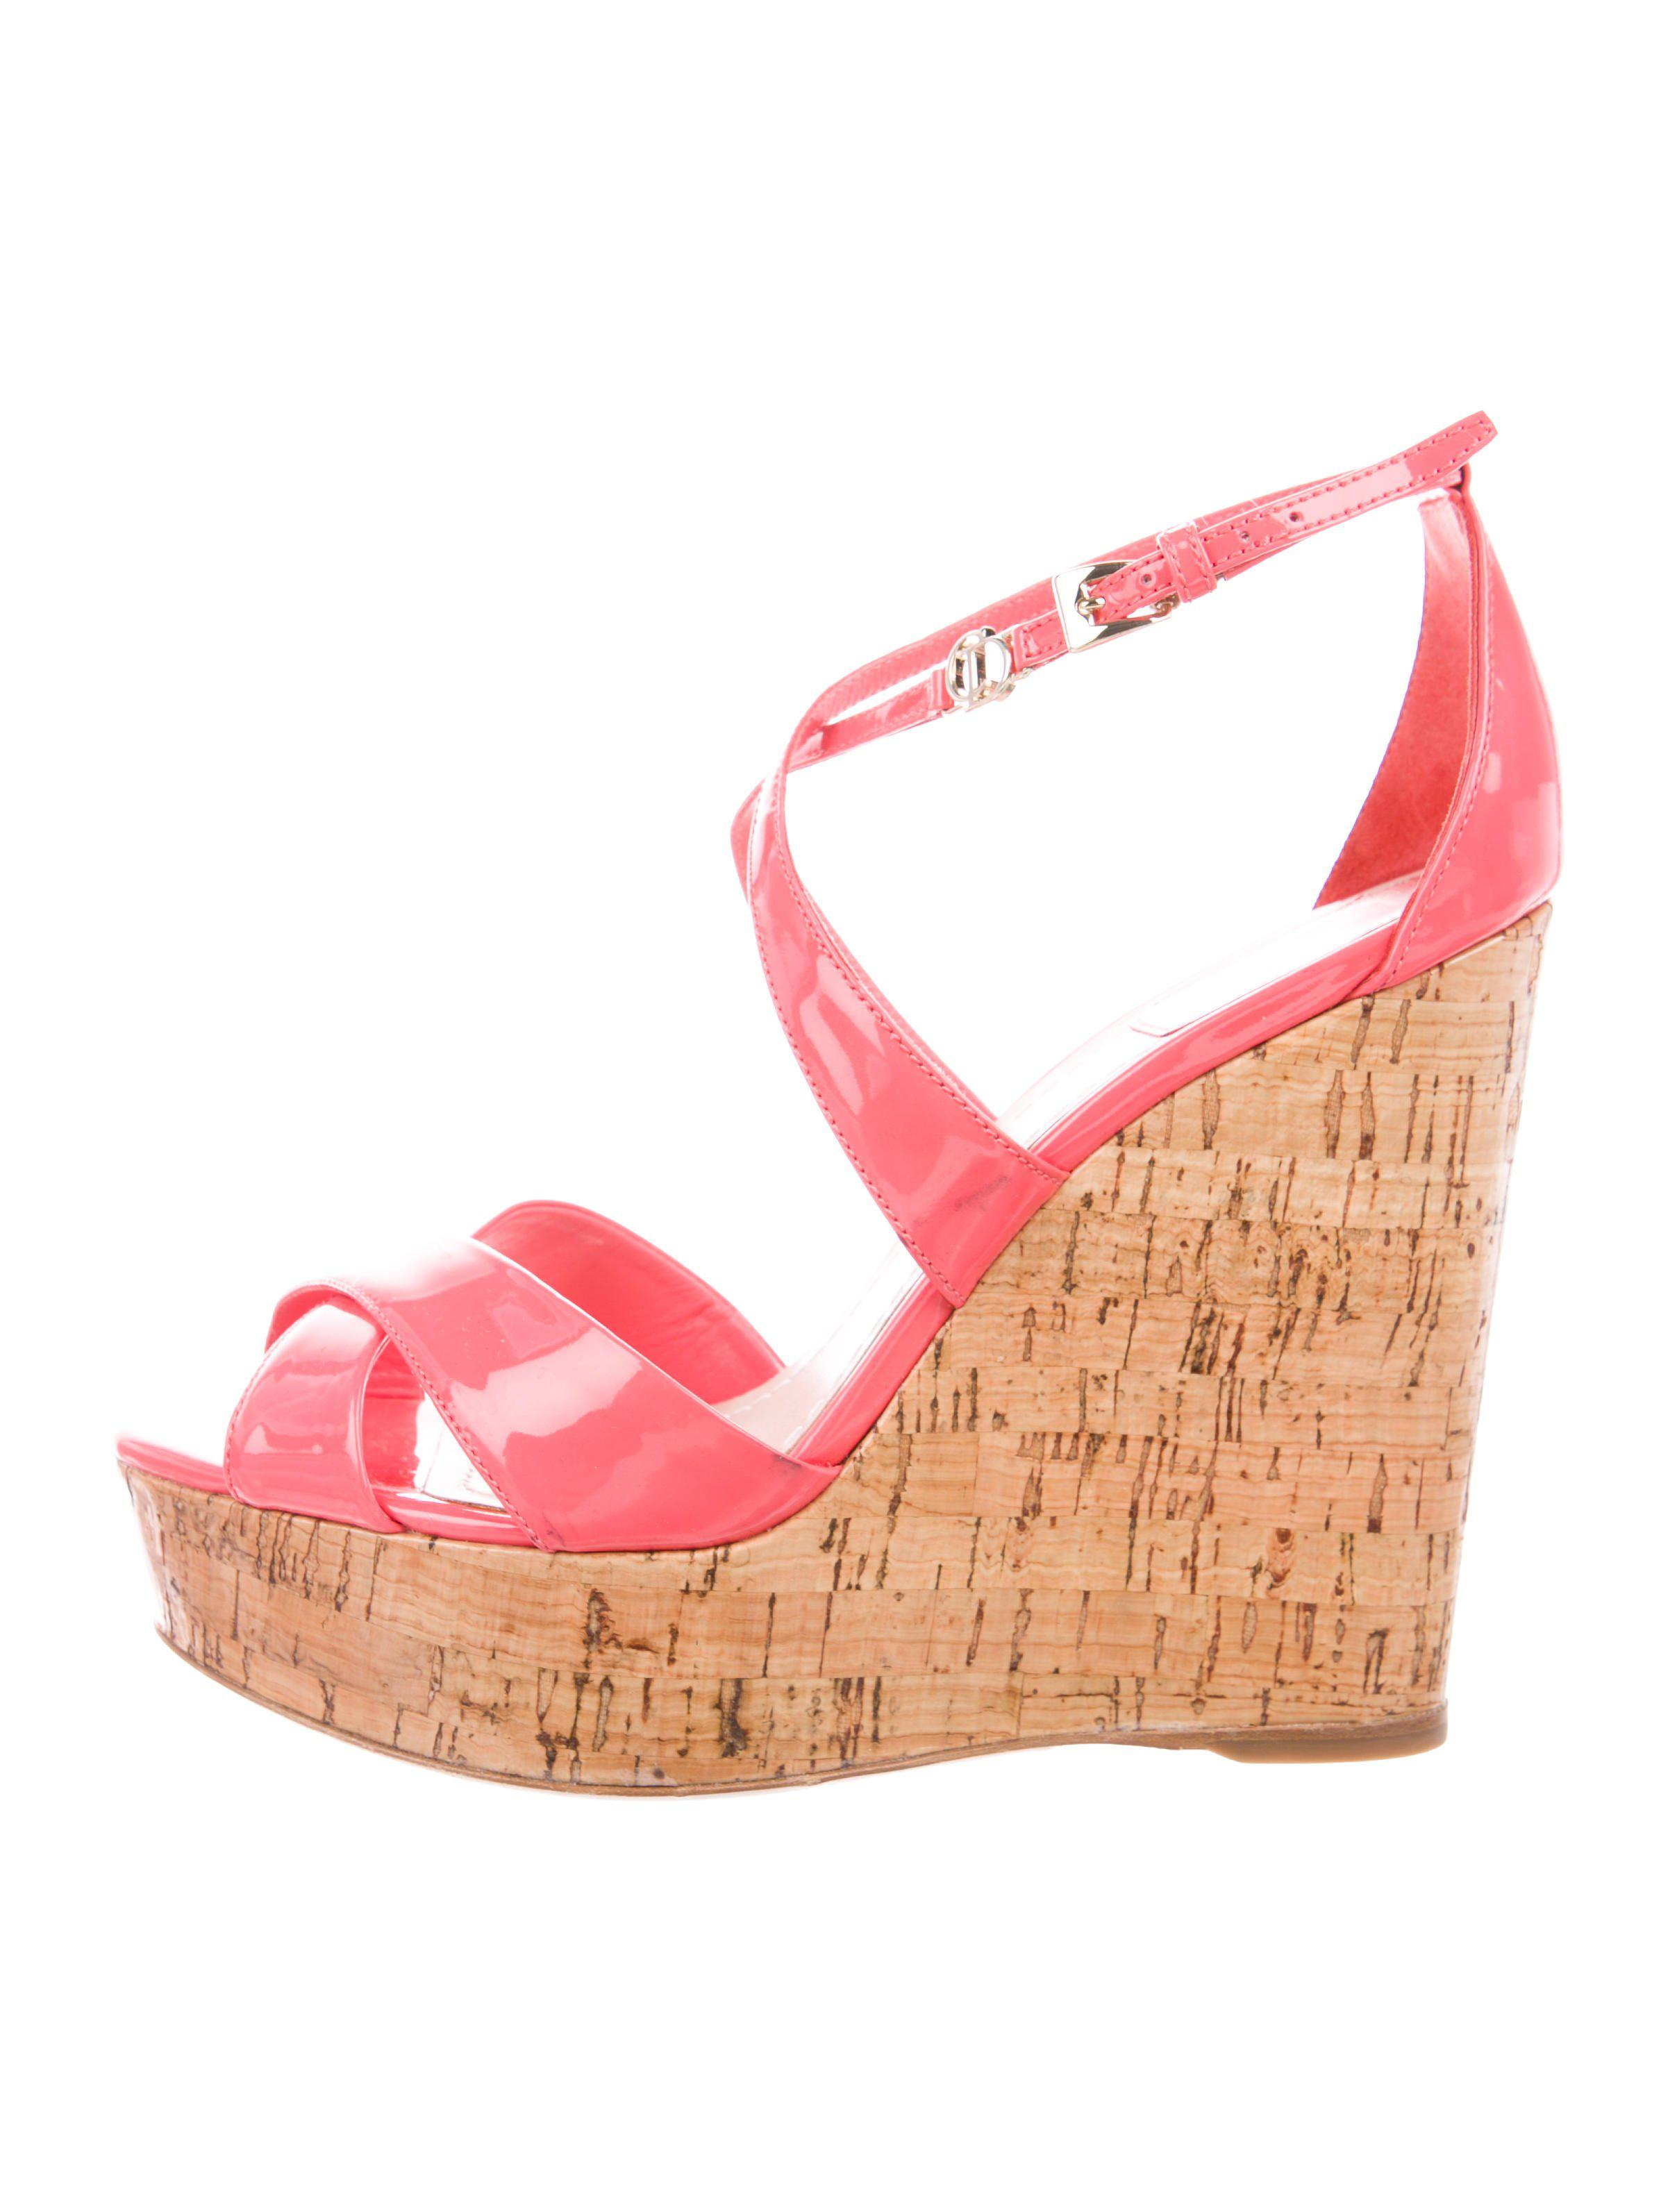 6532087b5f3 Lyst dior patent leather platform wedges coral in pink jpg 2415x3186 Dior  wedges